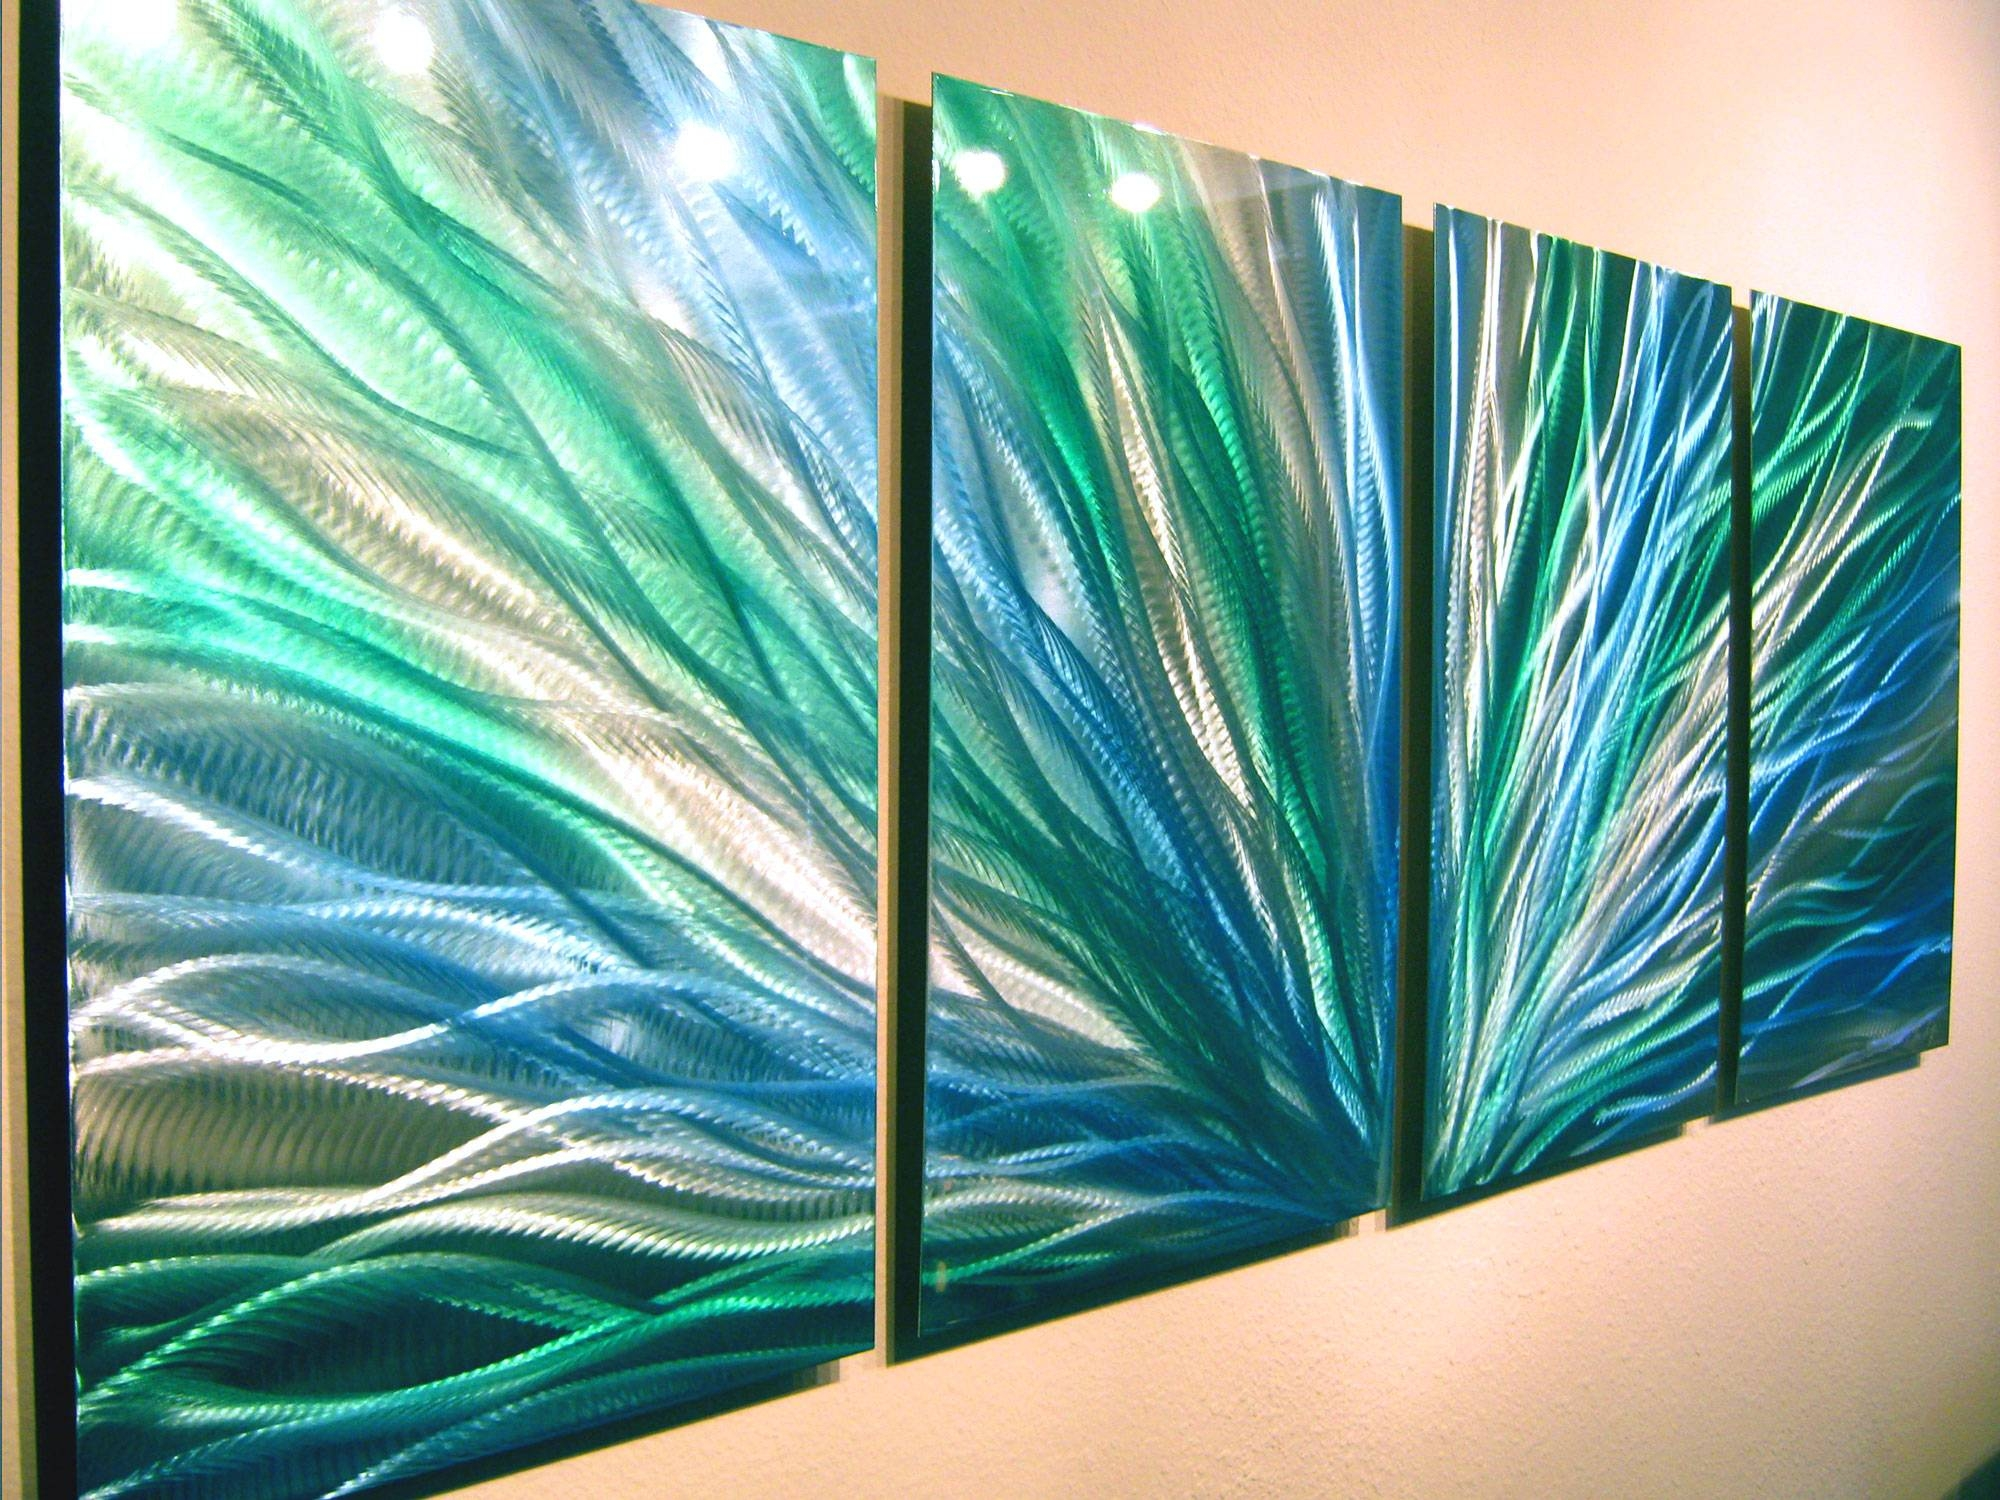 Home · Inspiring Art Gallery · Online Store Poweredstorenvy With Regard To 2017 Blue And Green Wall Art (View 12 of 20)